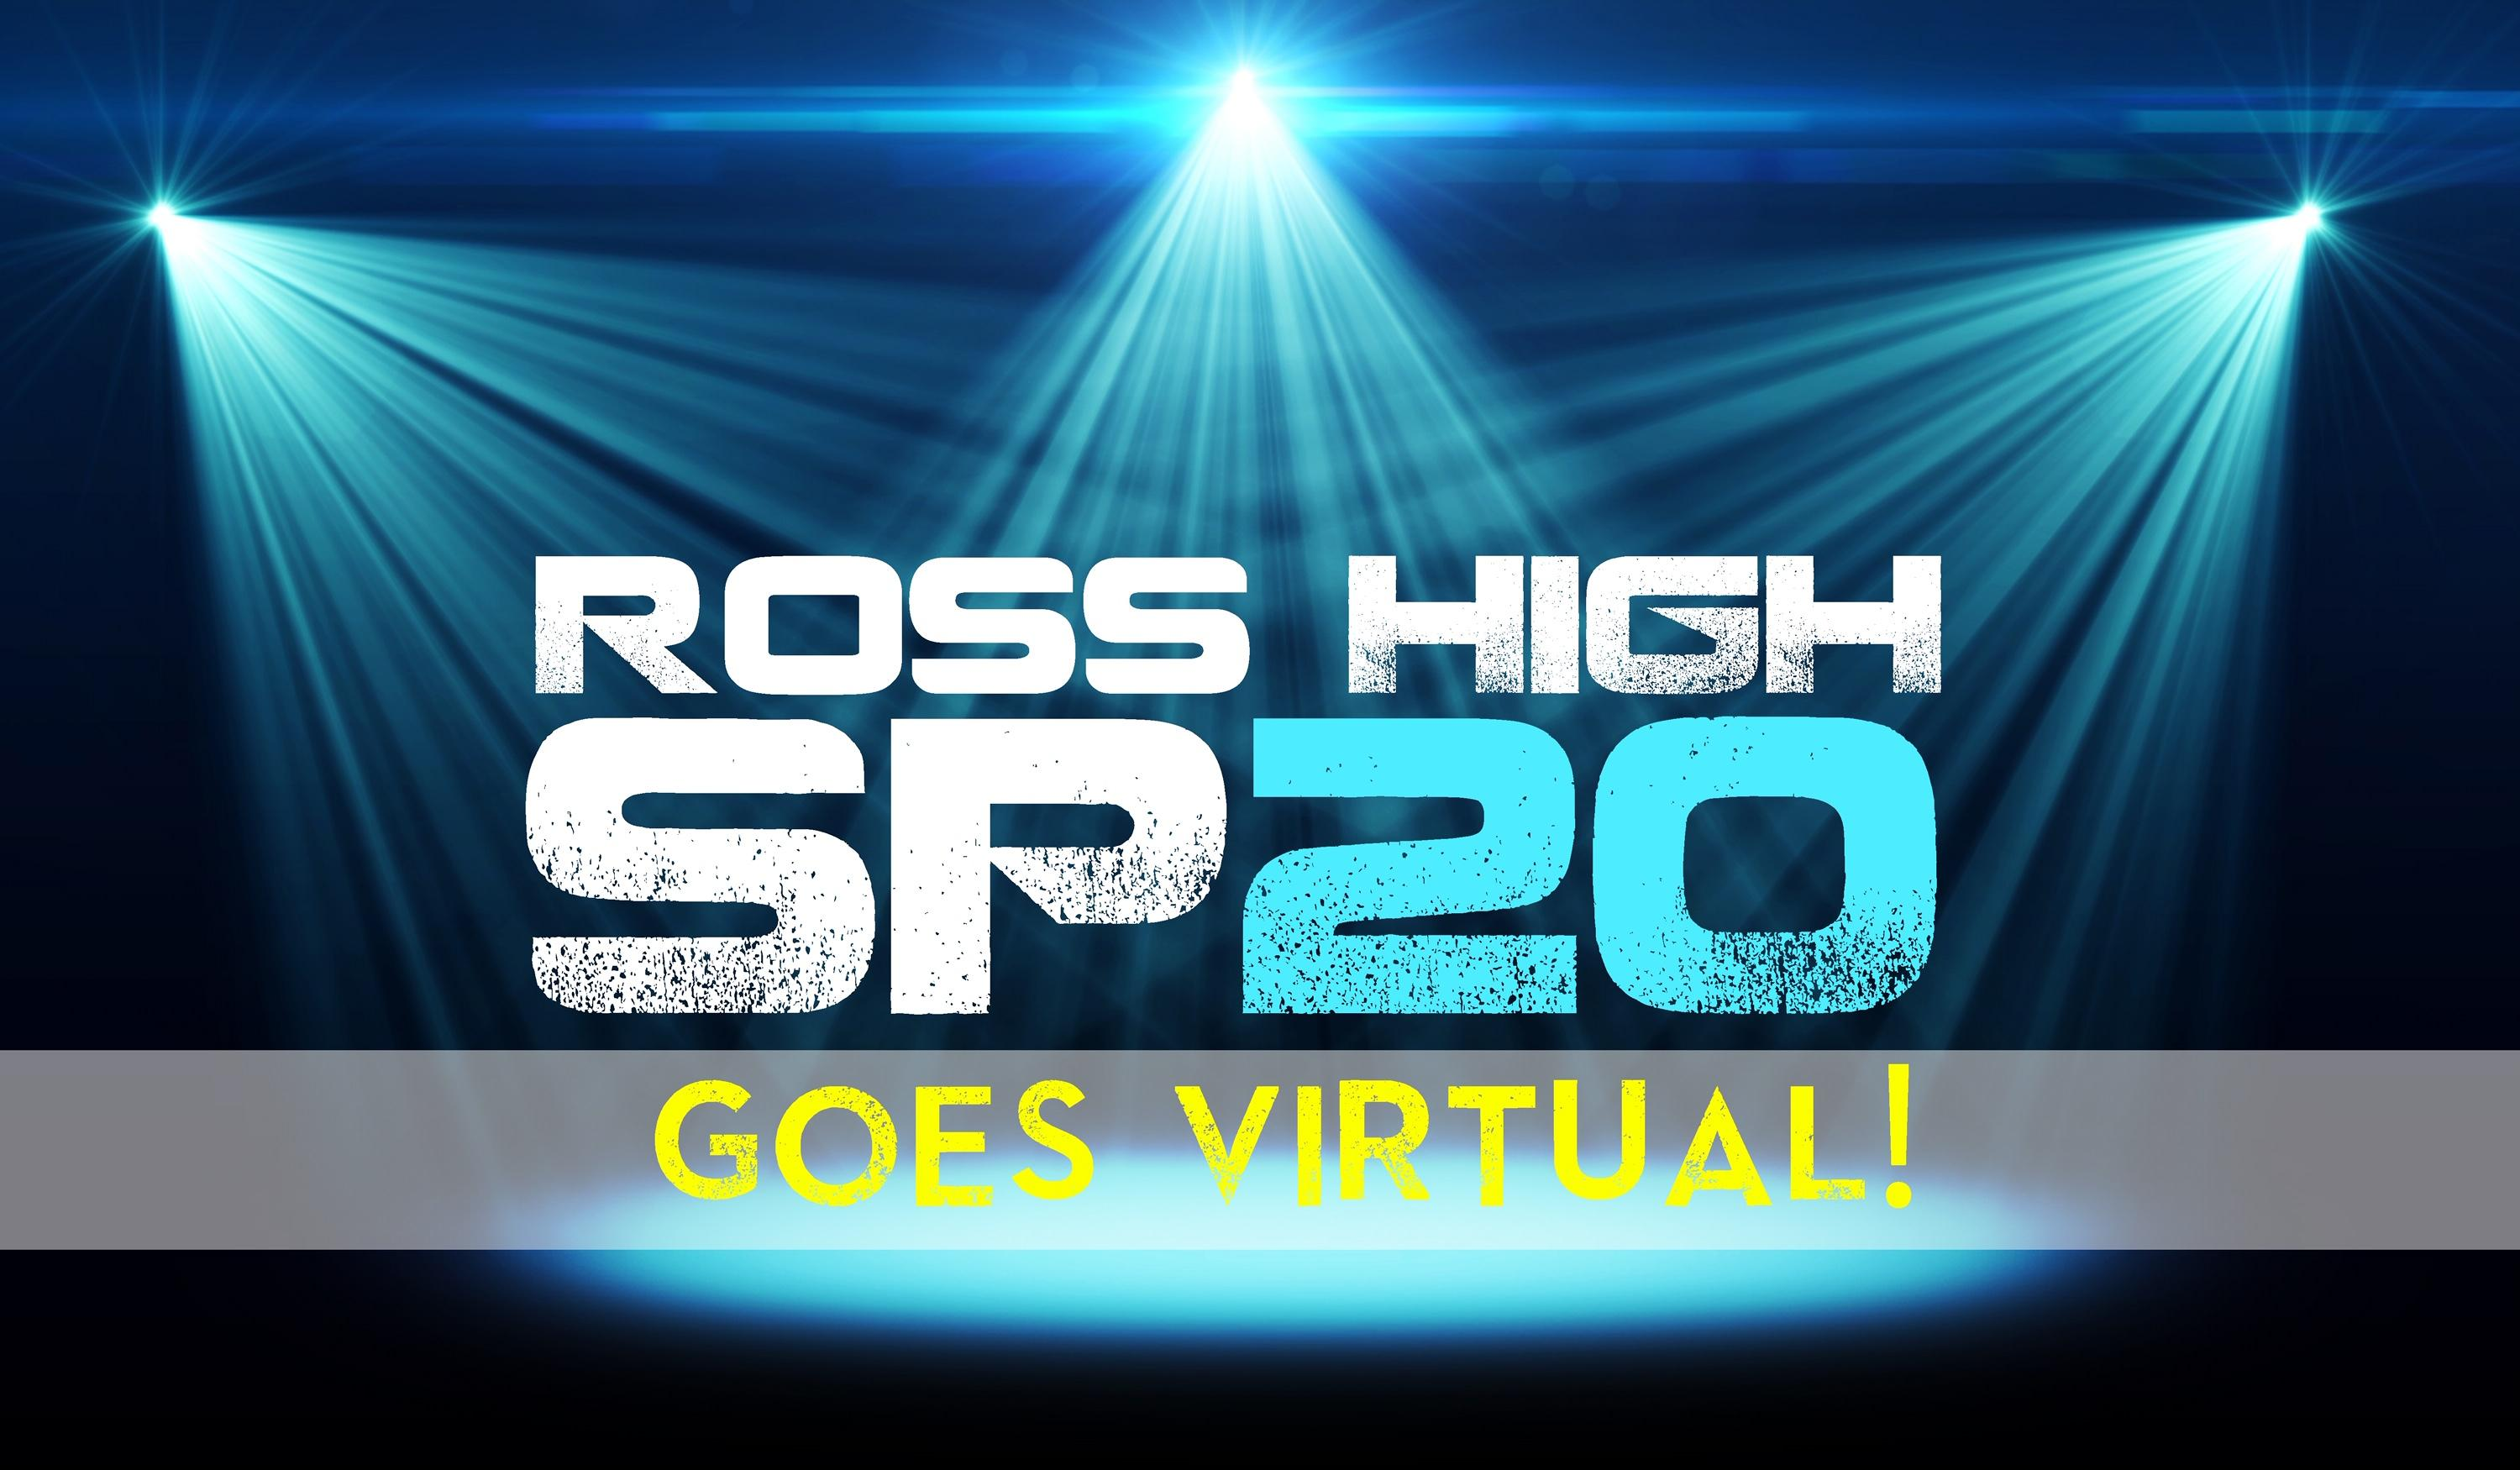 #RHSPOTY Ross HS VIRTUAL Sports Personality of the Year 2020